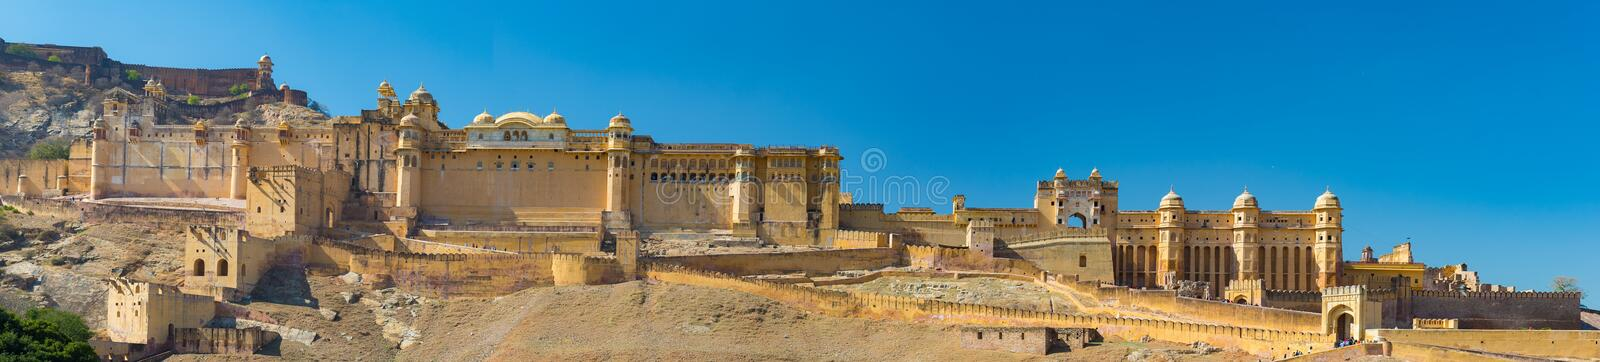 The impressive landscape and cityscape at Amber Fort, famous travel destination in Jaipur, Rajasthan, India. High resolution pano royalty free stock images